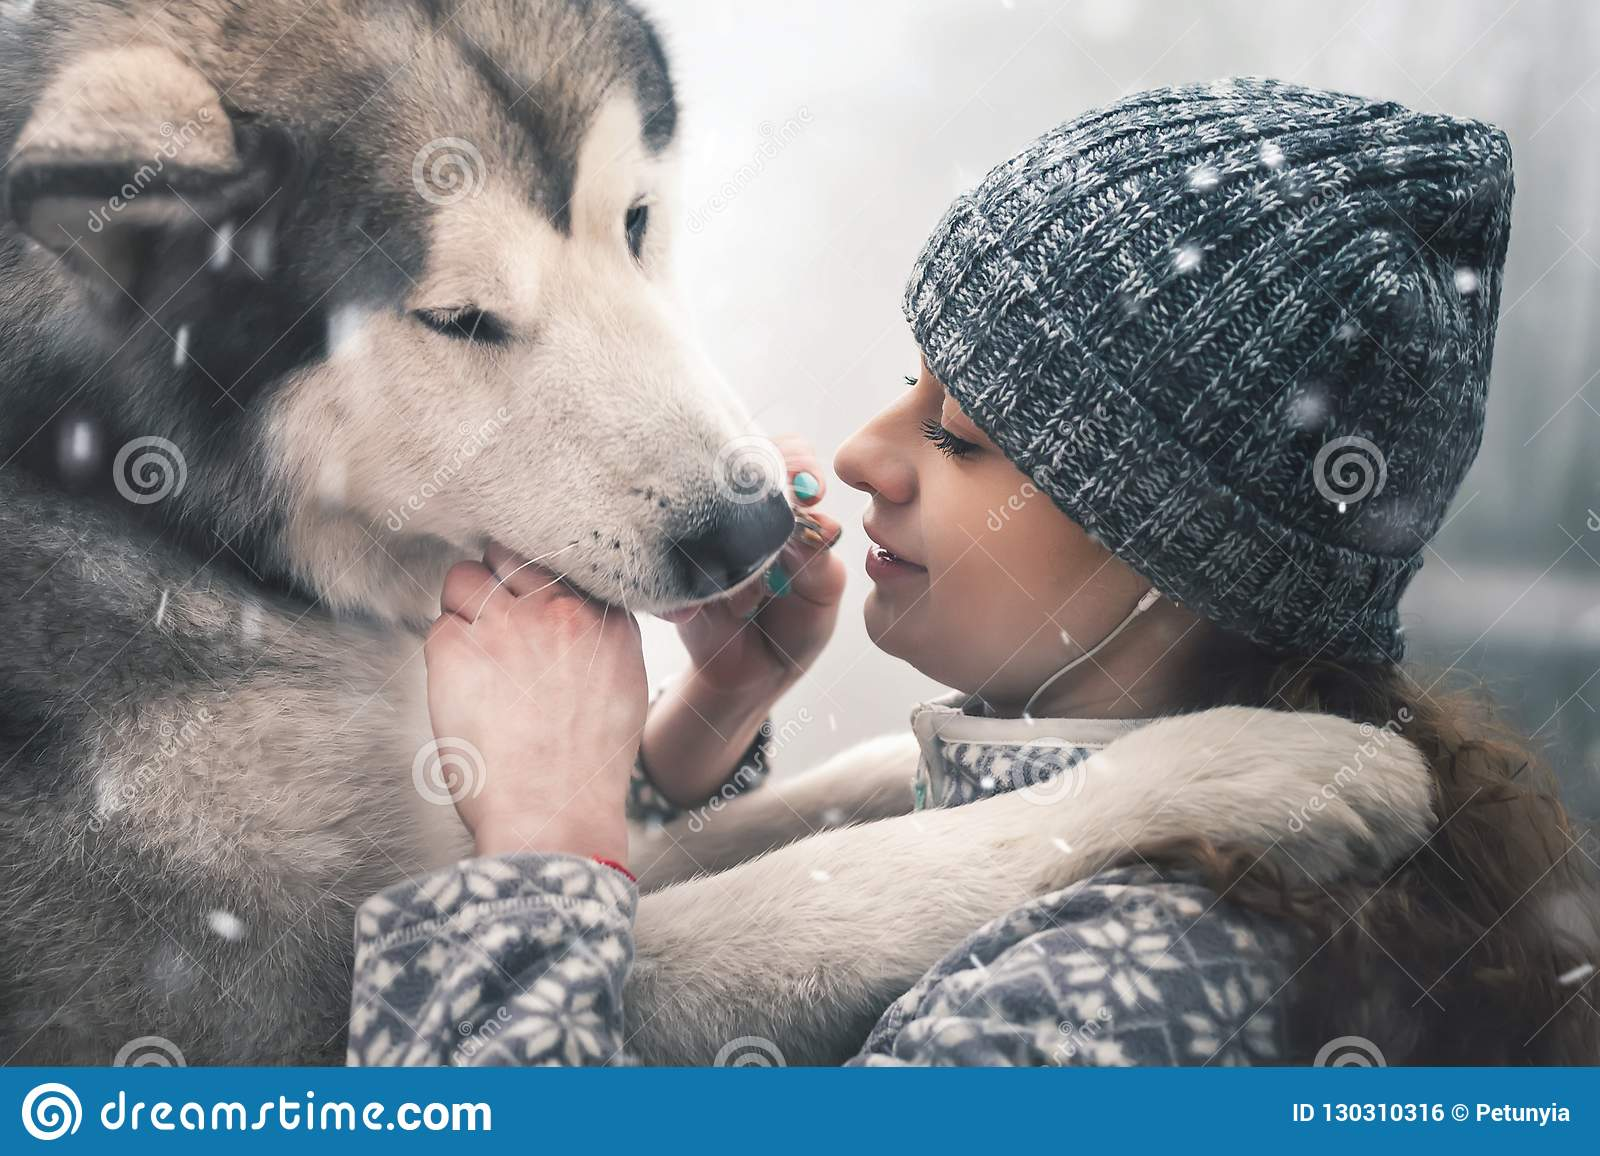 Image of young girl feeding her dog, alaskan malamute, outdoor